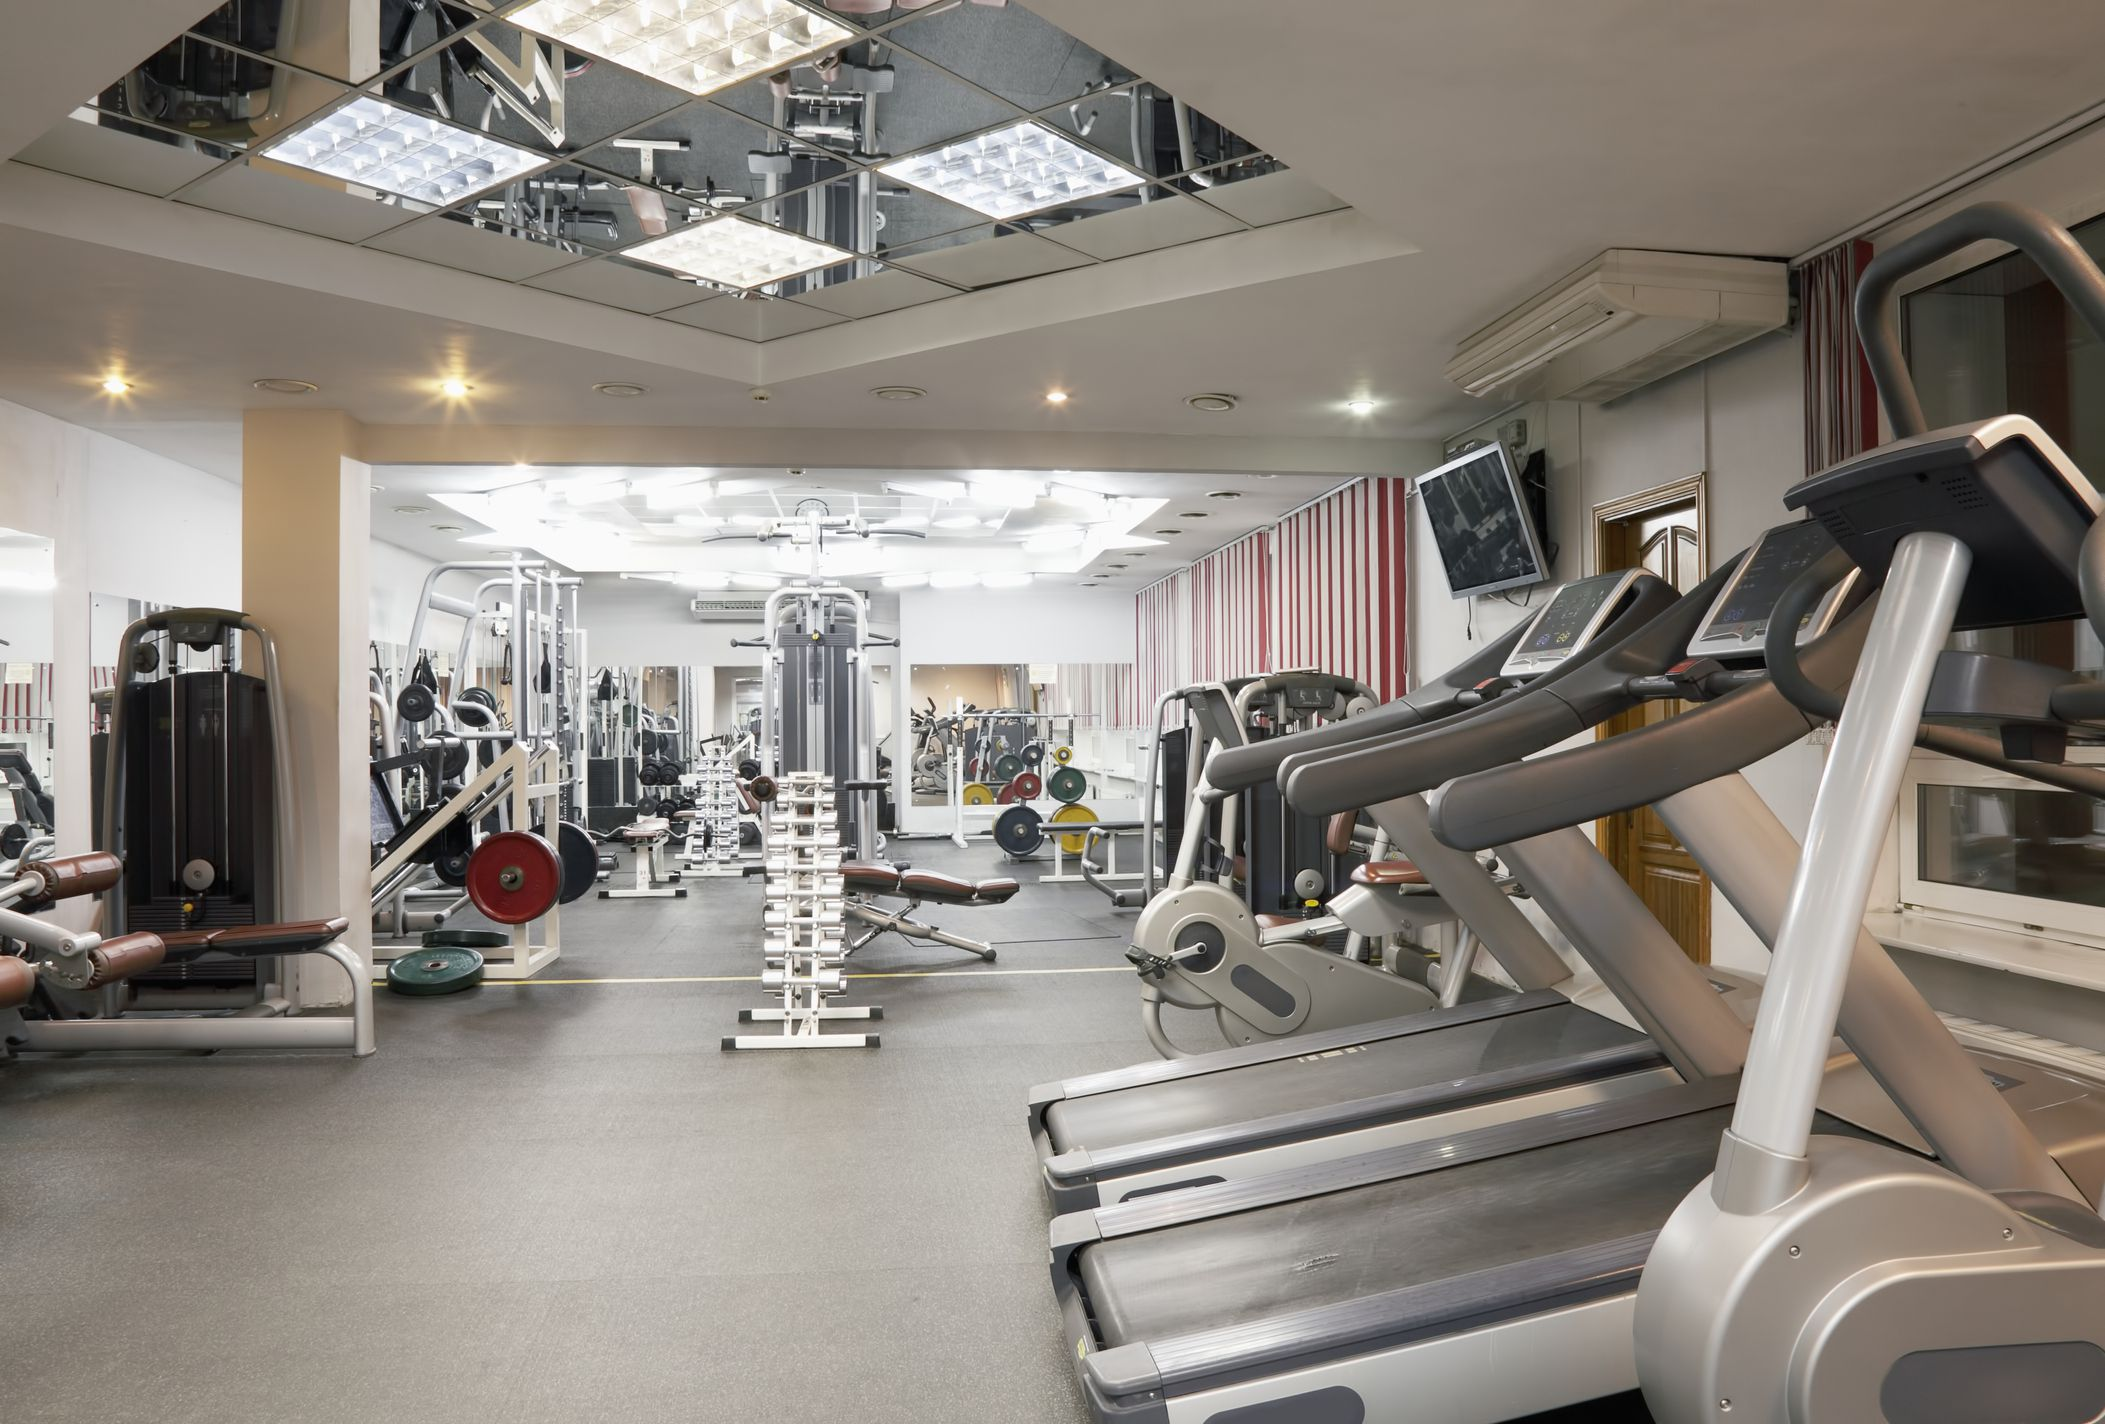 The Future of Fitness: Nearly 50% of Gym Members Won't Go Back After Coronavirus Pandemic